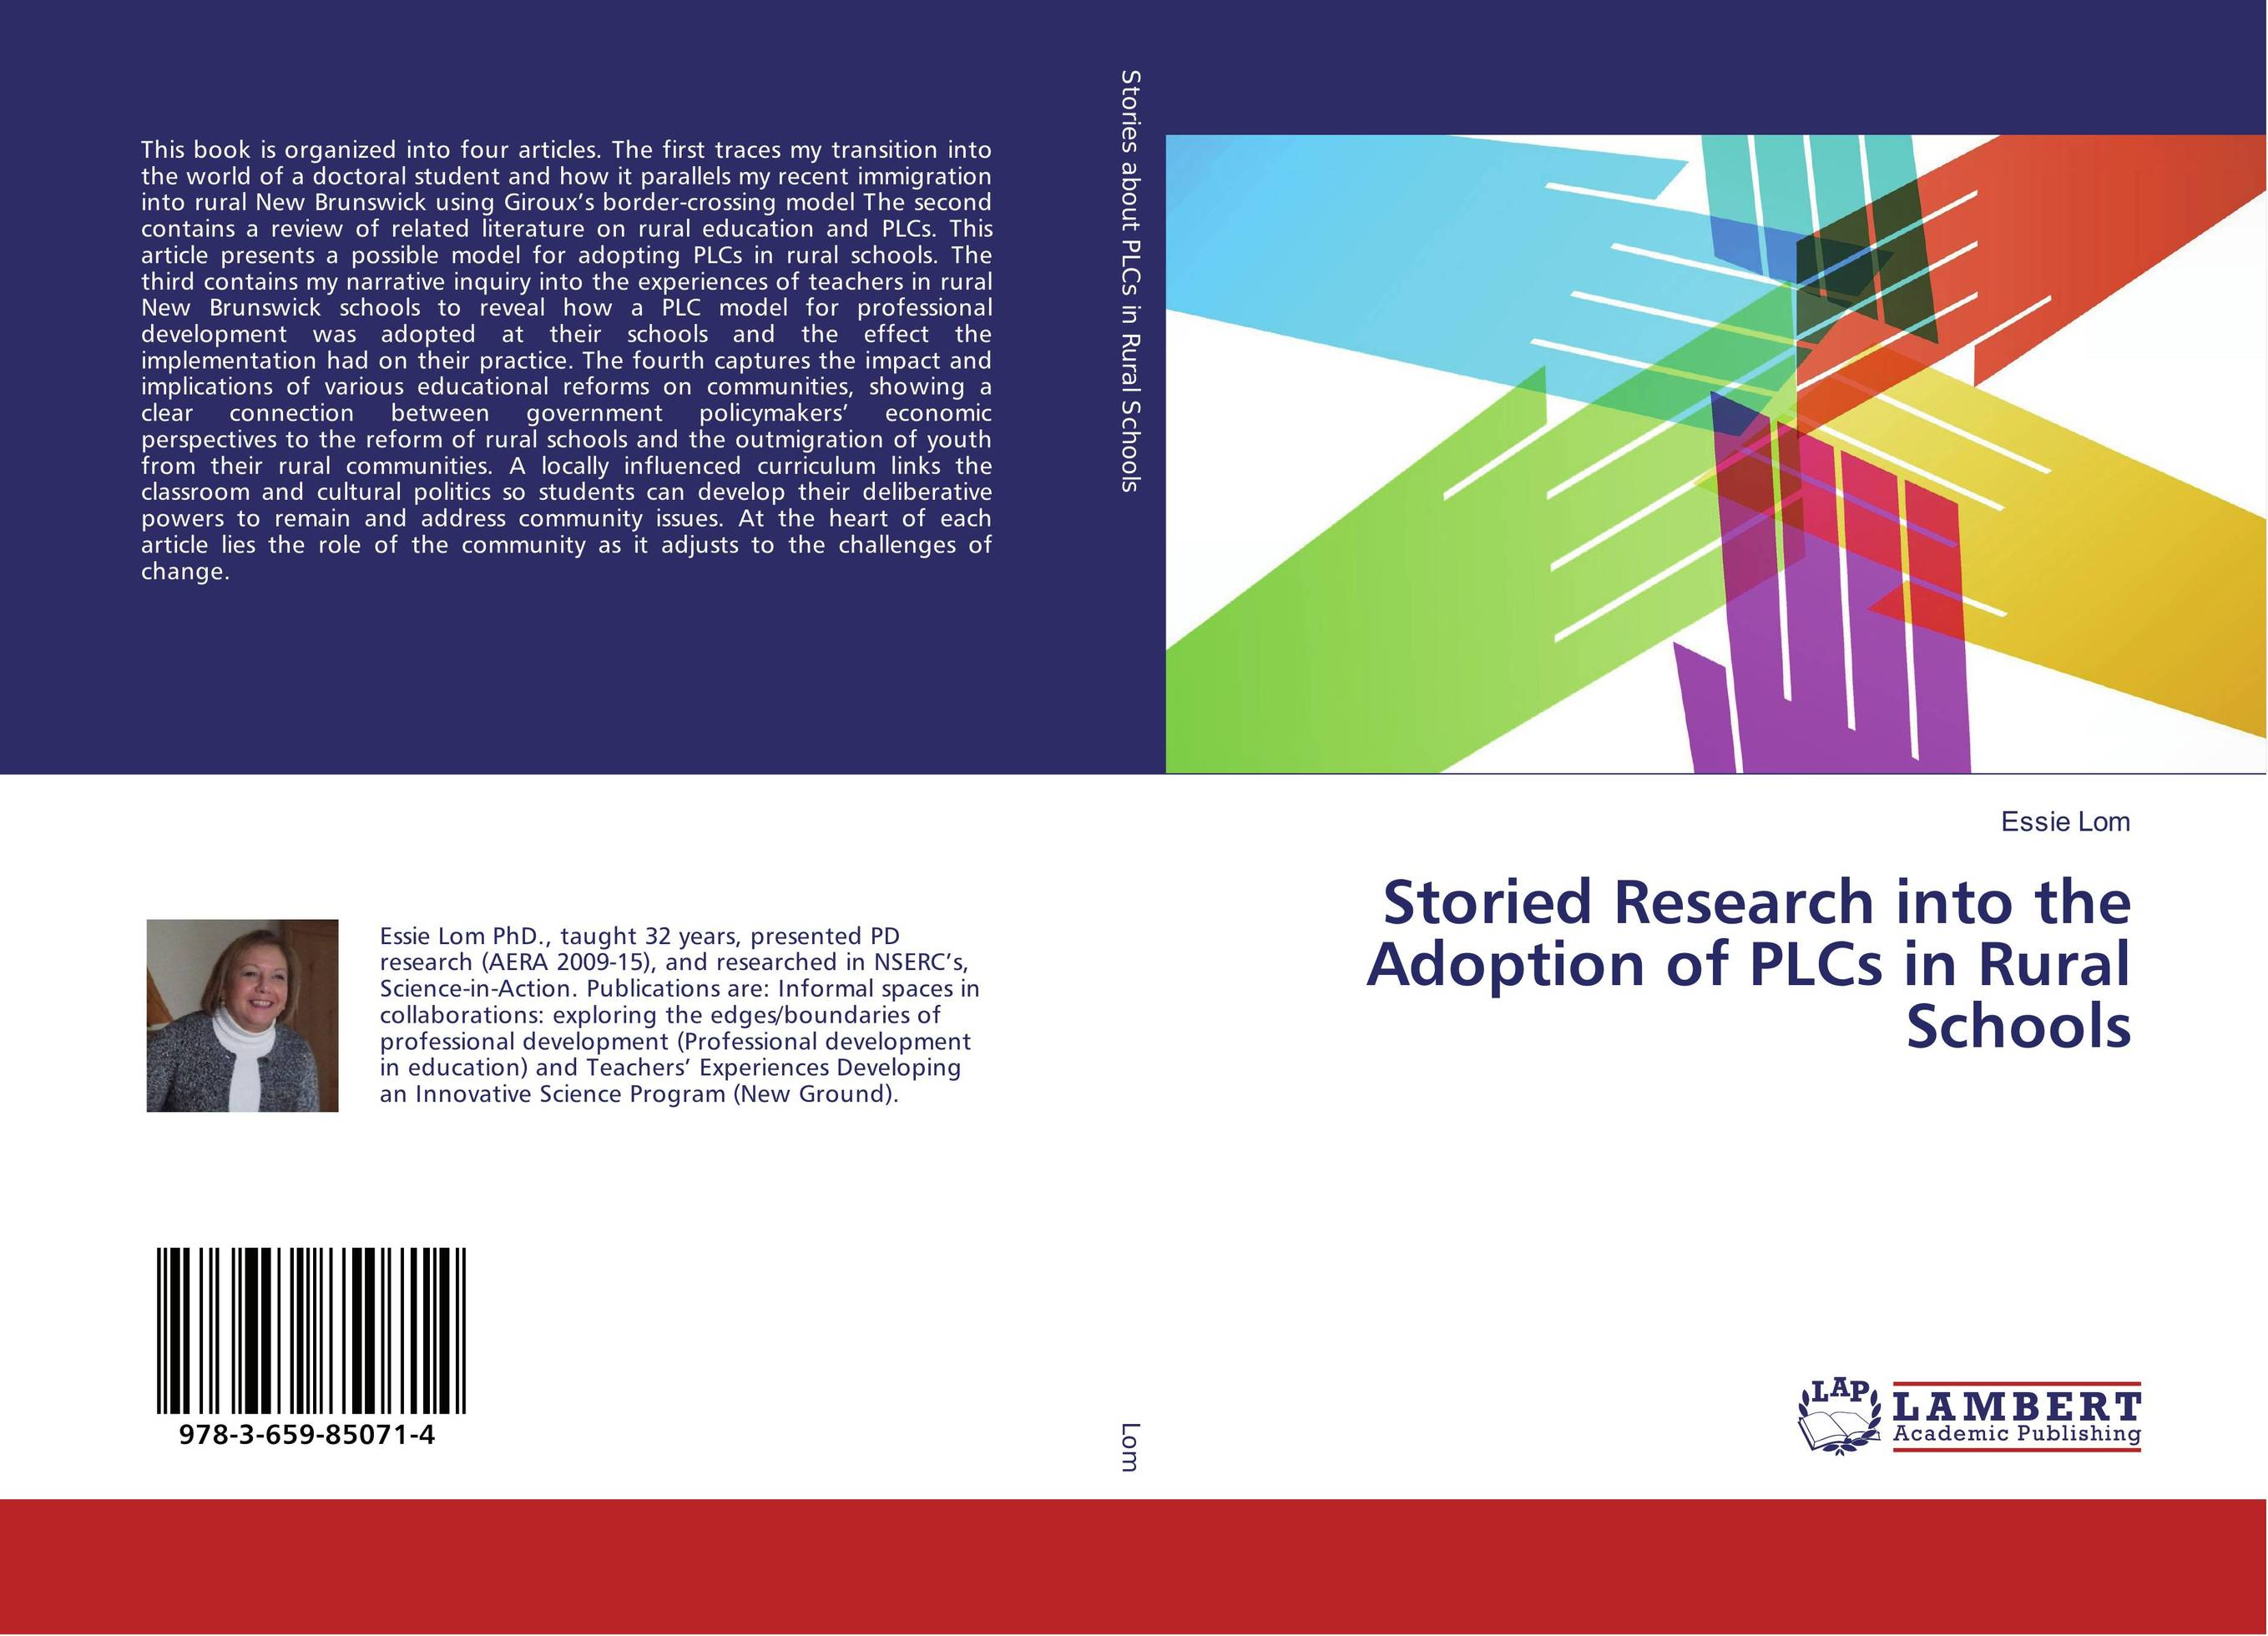 Storied Research into the Adoption of PLCs in Rural Schools mc 2015 relogios quatz 2251